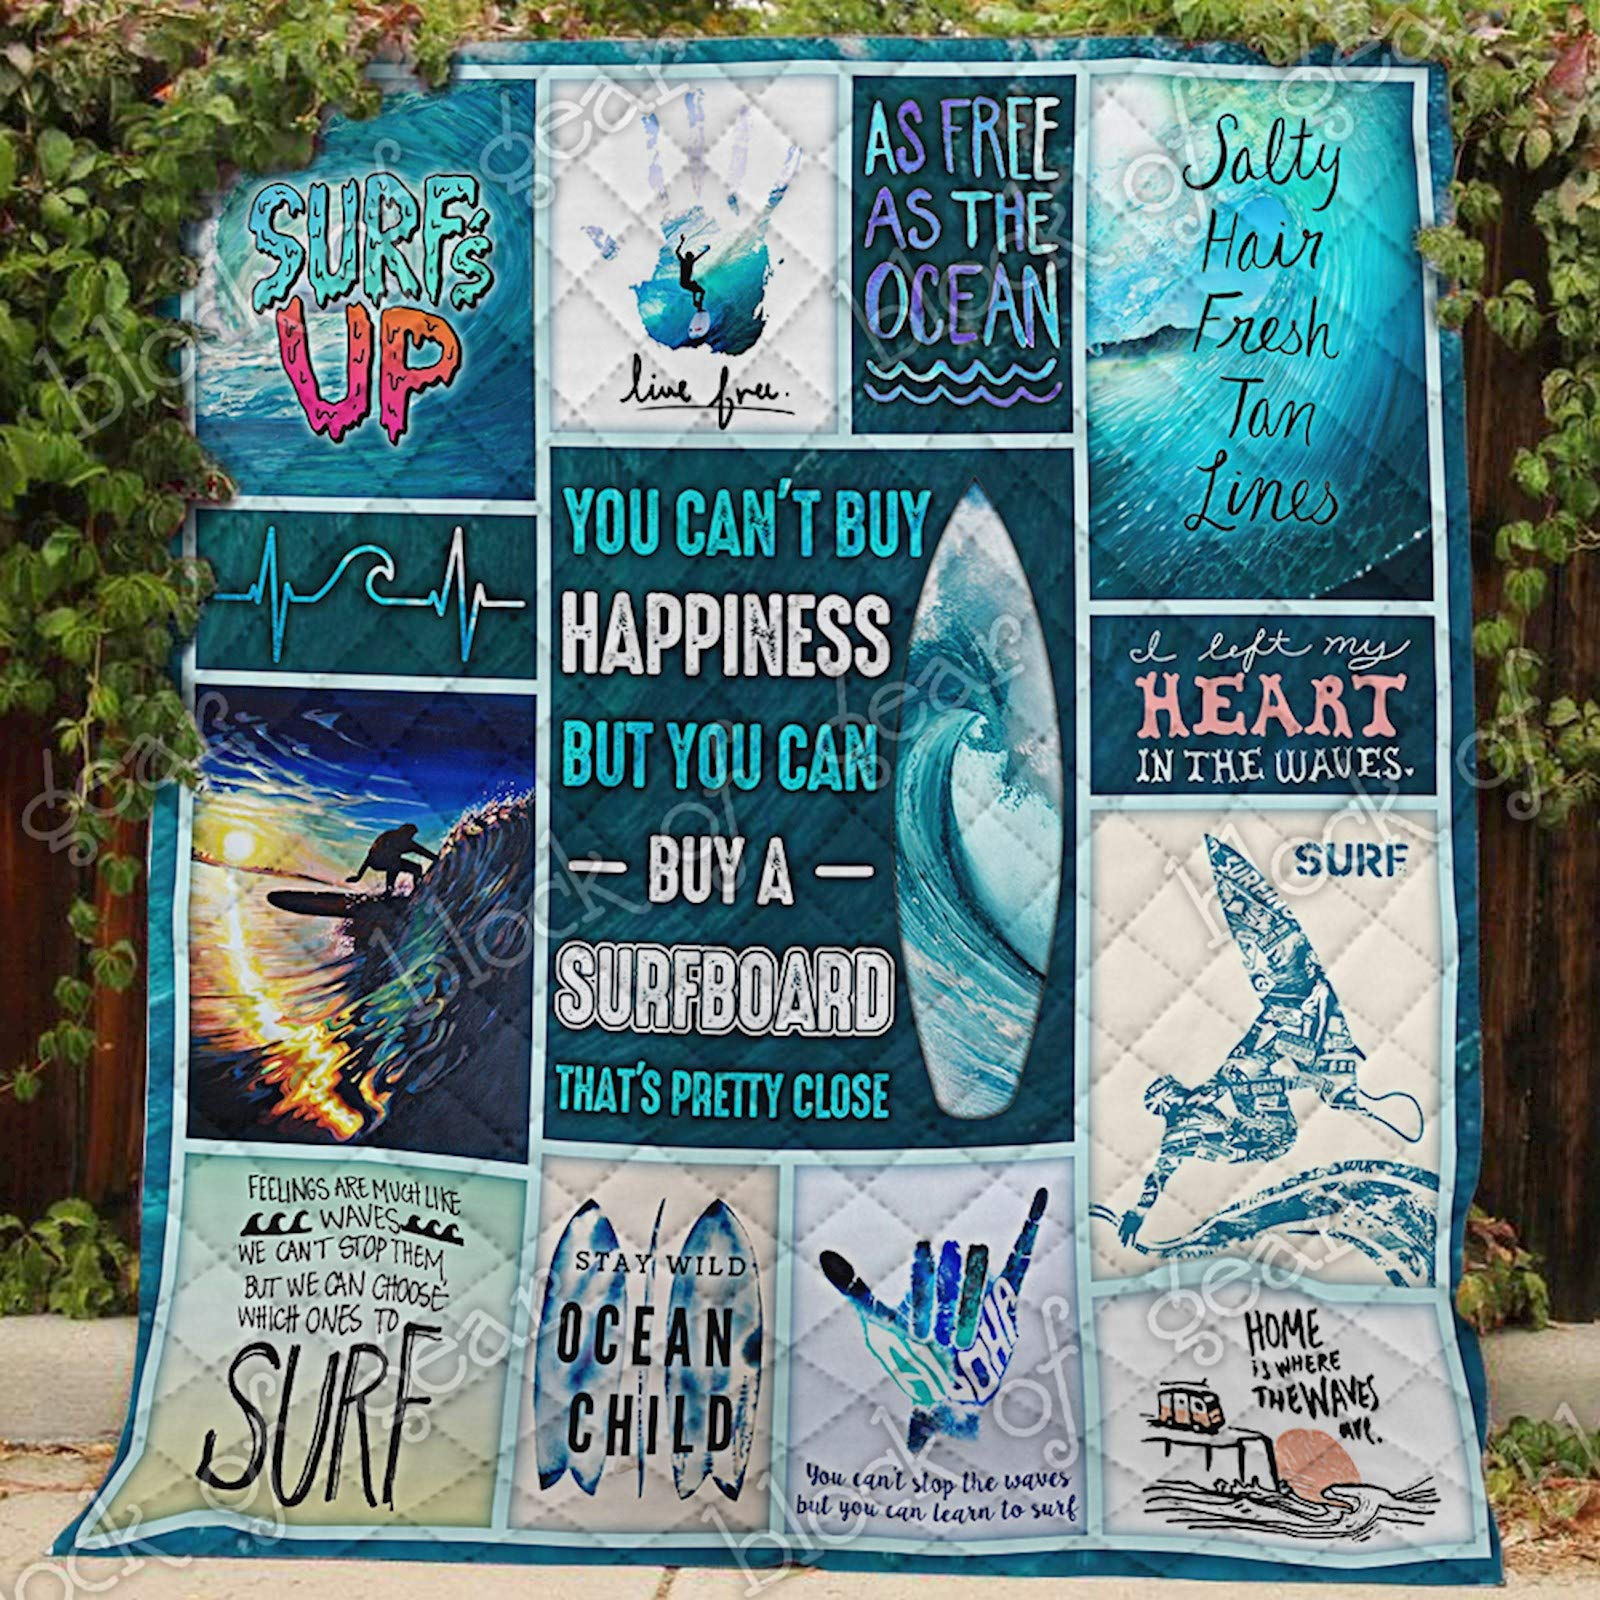 Stay Wild Ocean Child Surfing Quilt PS297, King All-Season Quilts Comforters with Reversible Cotton King/Queen/Twin Size - Best Decorative Quilts-Unique Quilted for Gifts